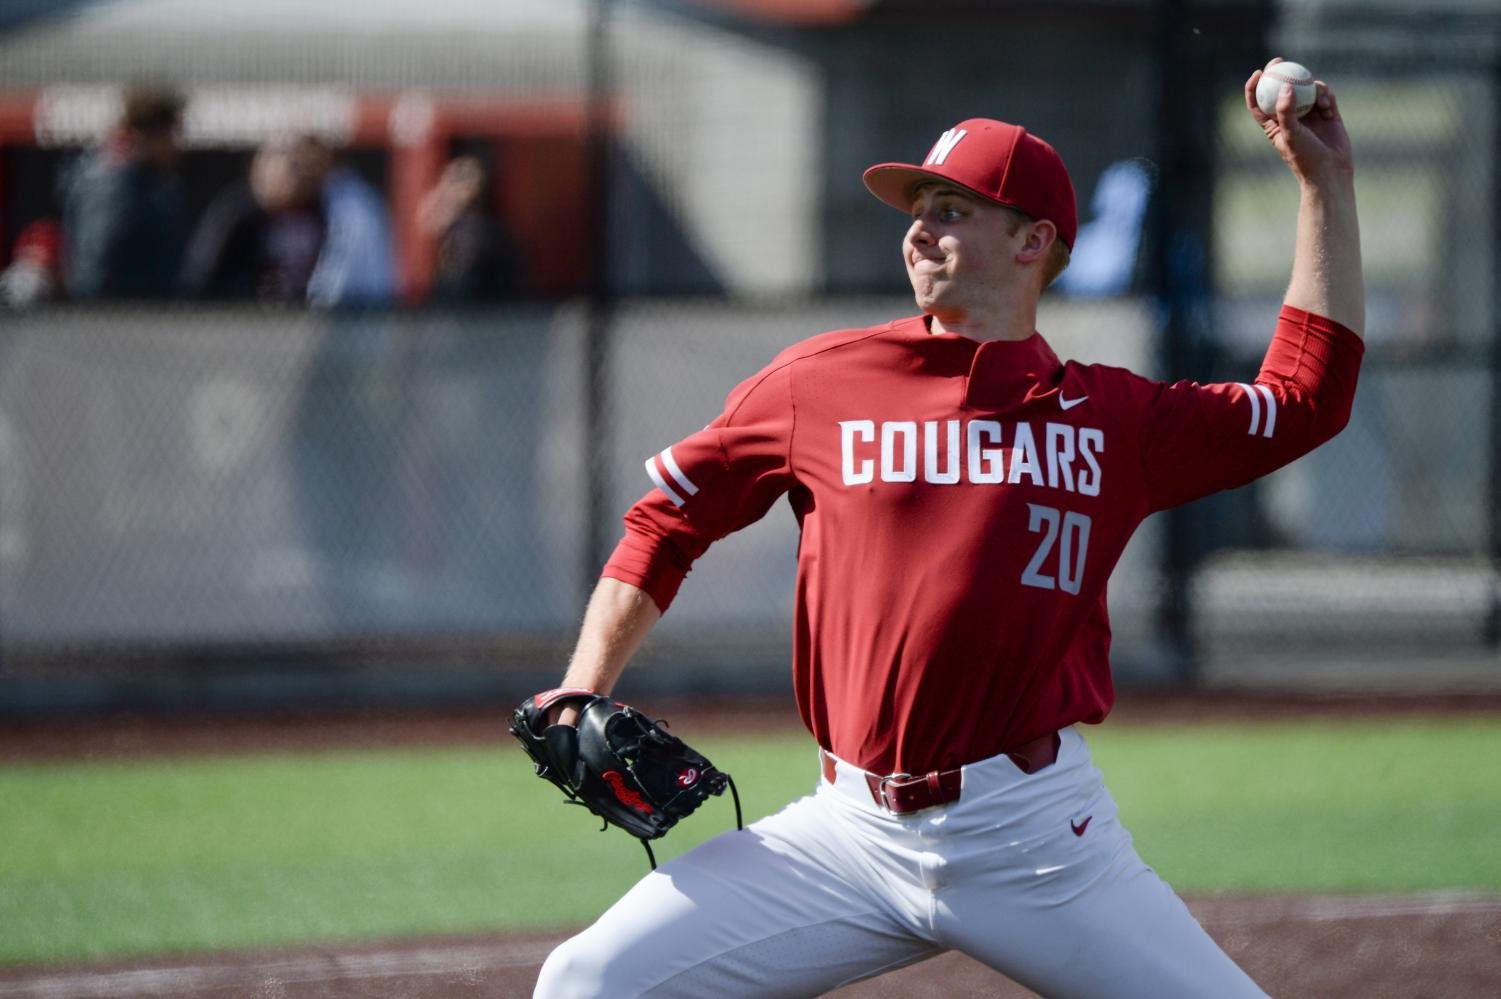 Junior left-handed pitcher AJ Block throws a pitch during the game against No. 2 Stanford on Saturday  afternoon at Bailey-Brayton Field. The Cougars lost the game 8-5.